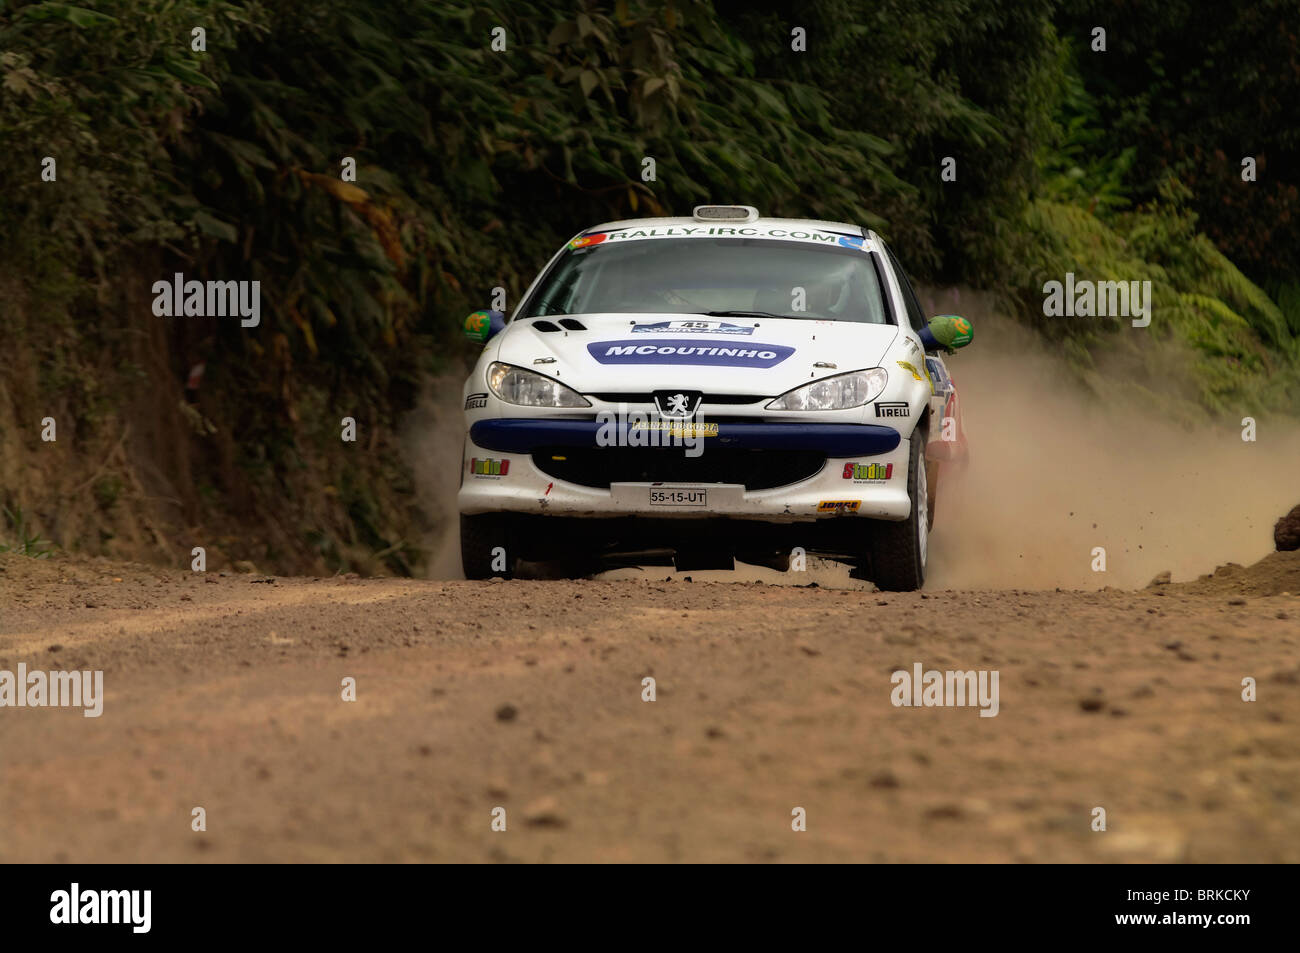 Taken during the IRC rally - Stock Image